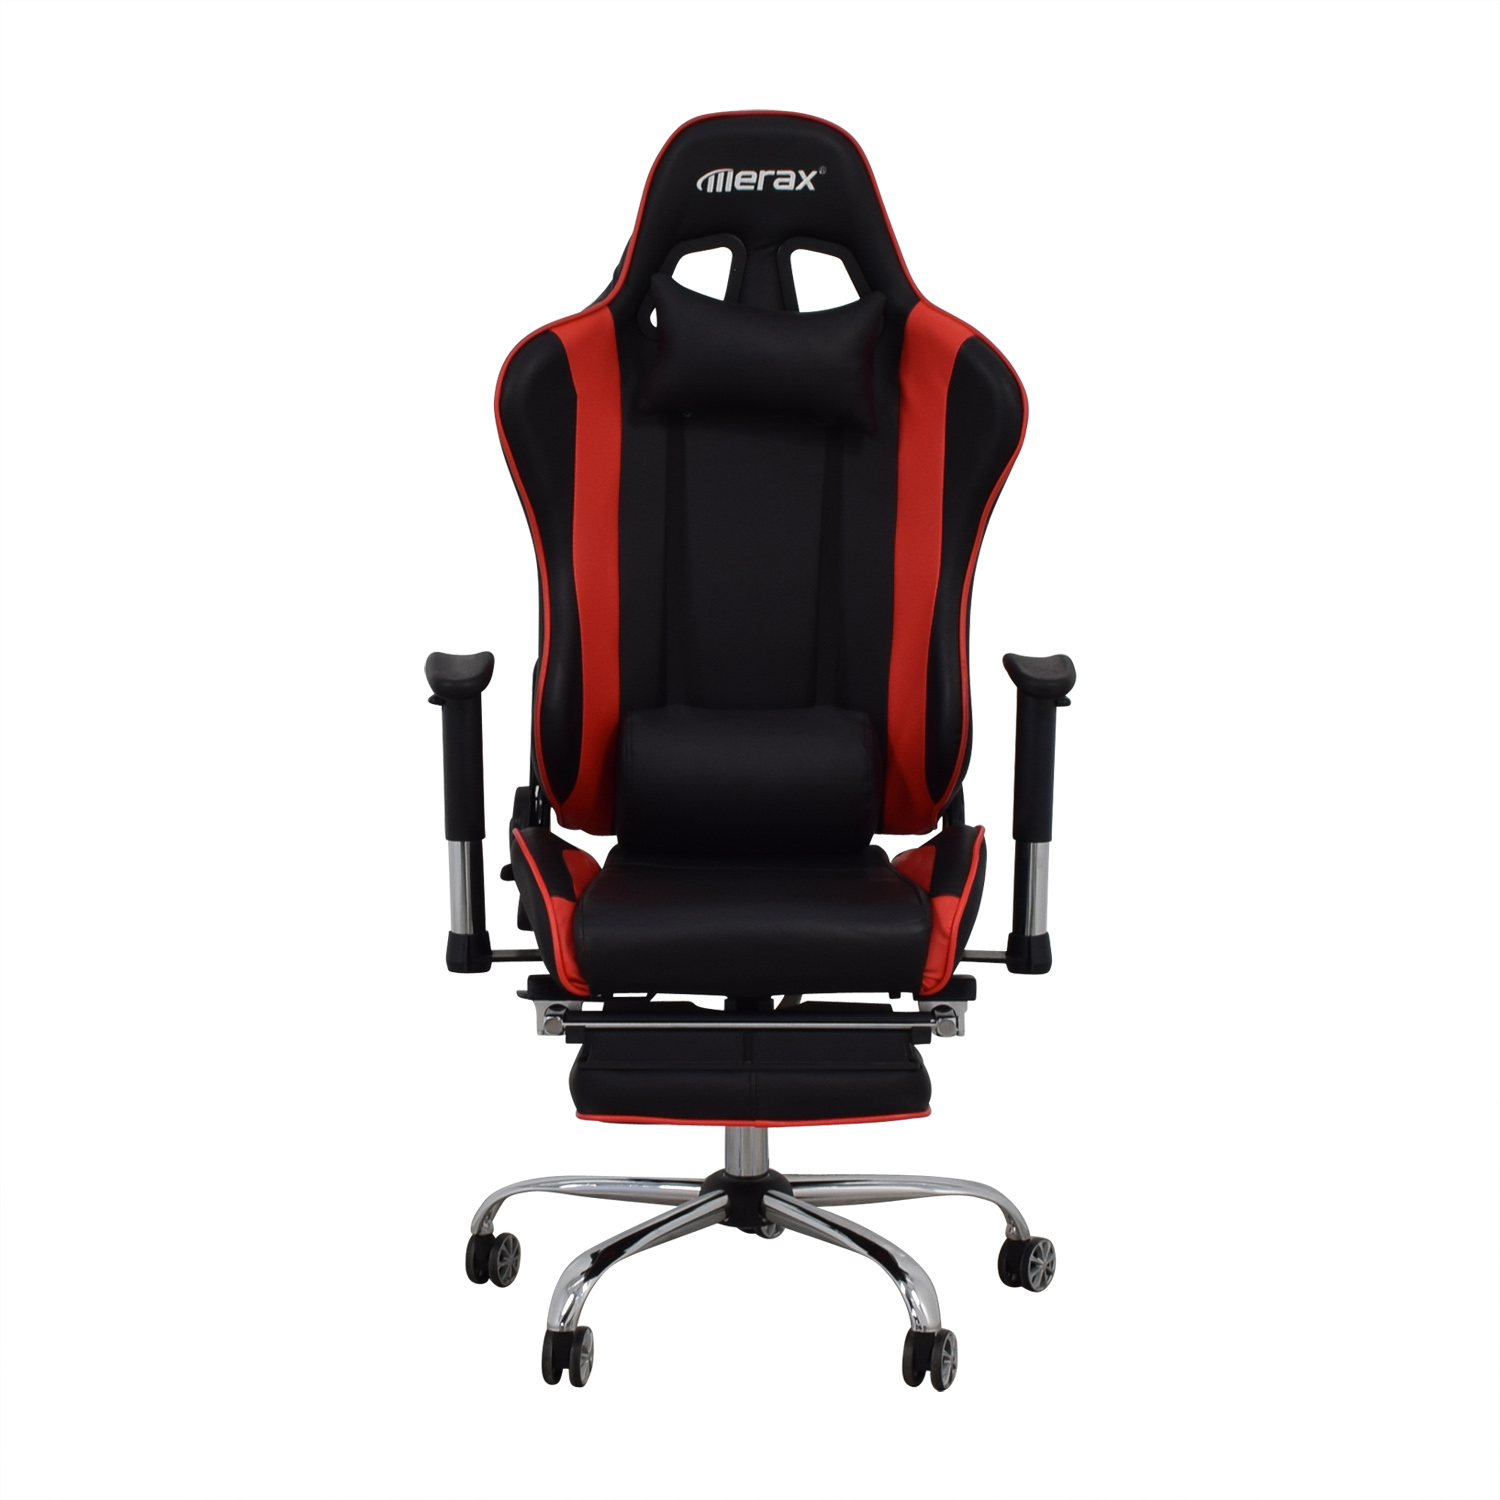 buy Merax Black and Red Recliner Gaming Chair with Footrest Merax